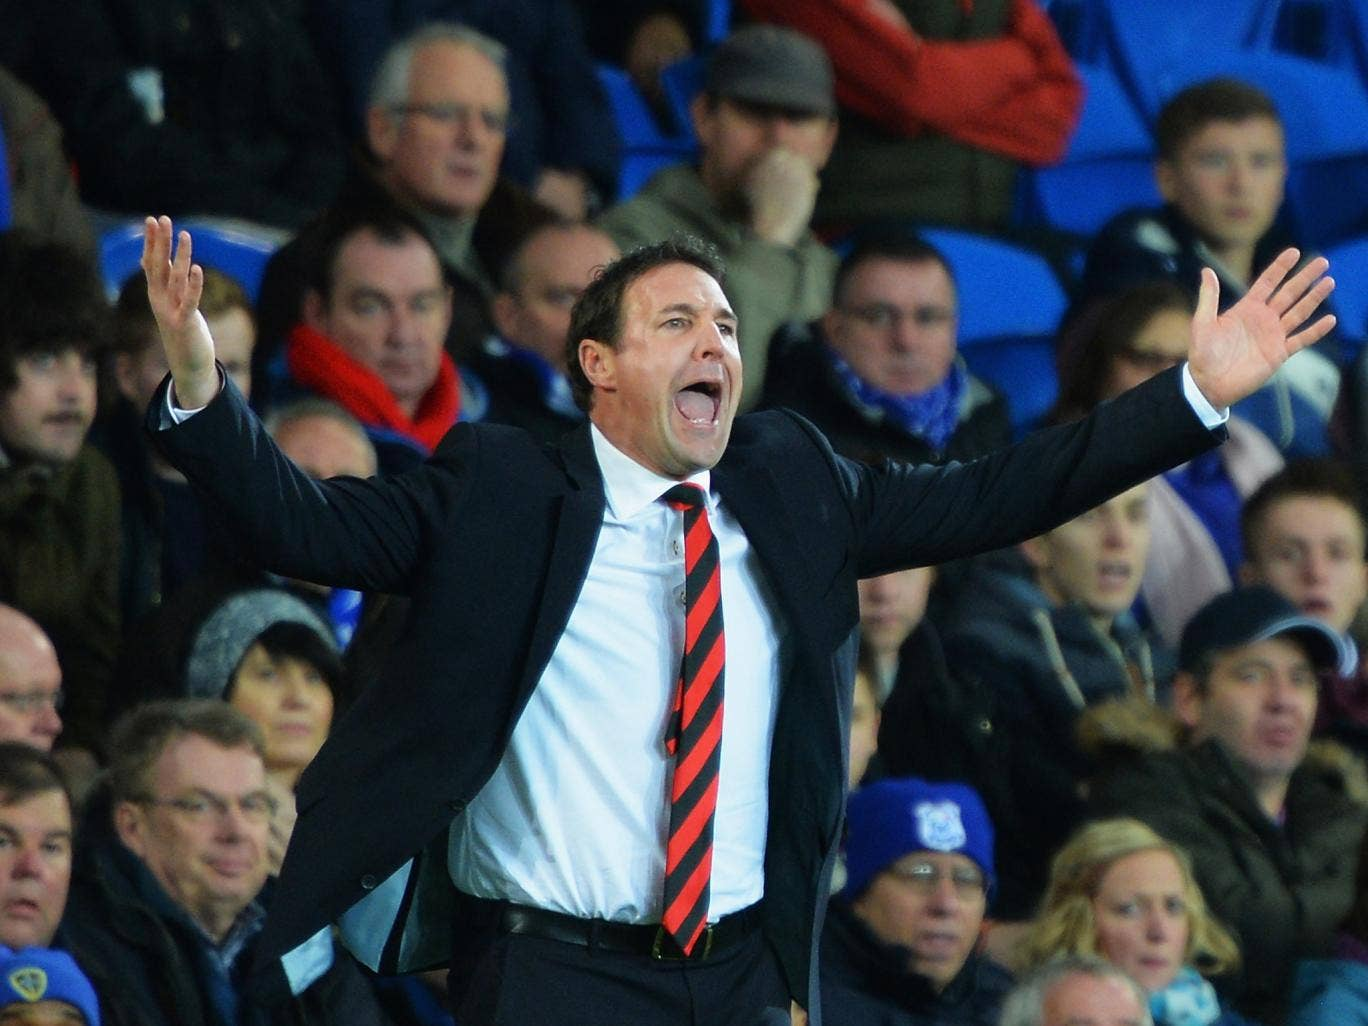 Malky Mackay remonstrates on the sidelines during Cardiff's 3-0 loss to Southampton